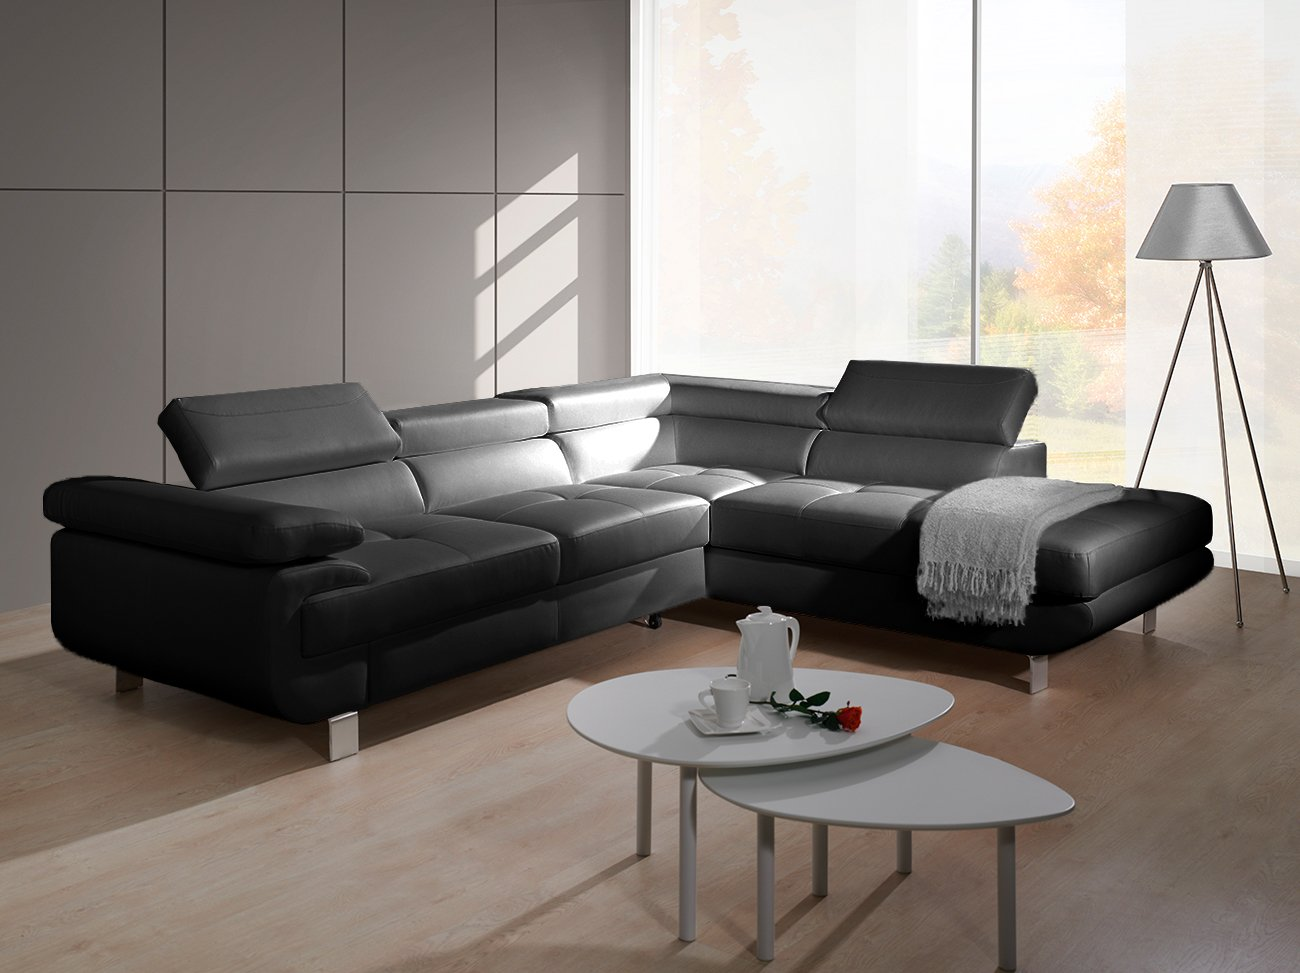 luccia schwarz sofa couch ecksofa l form elegant mit. Black Bedroom Furniture Sets. Home Design Ideas